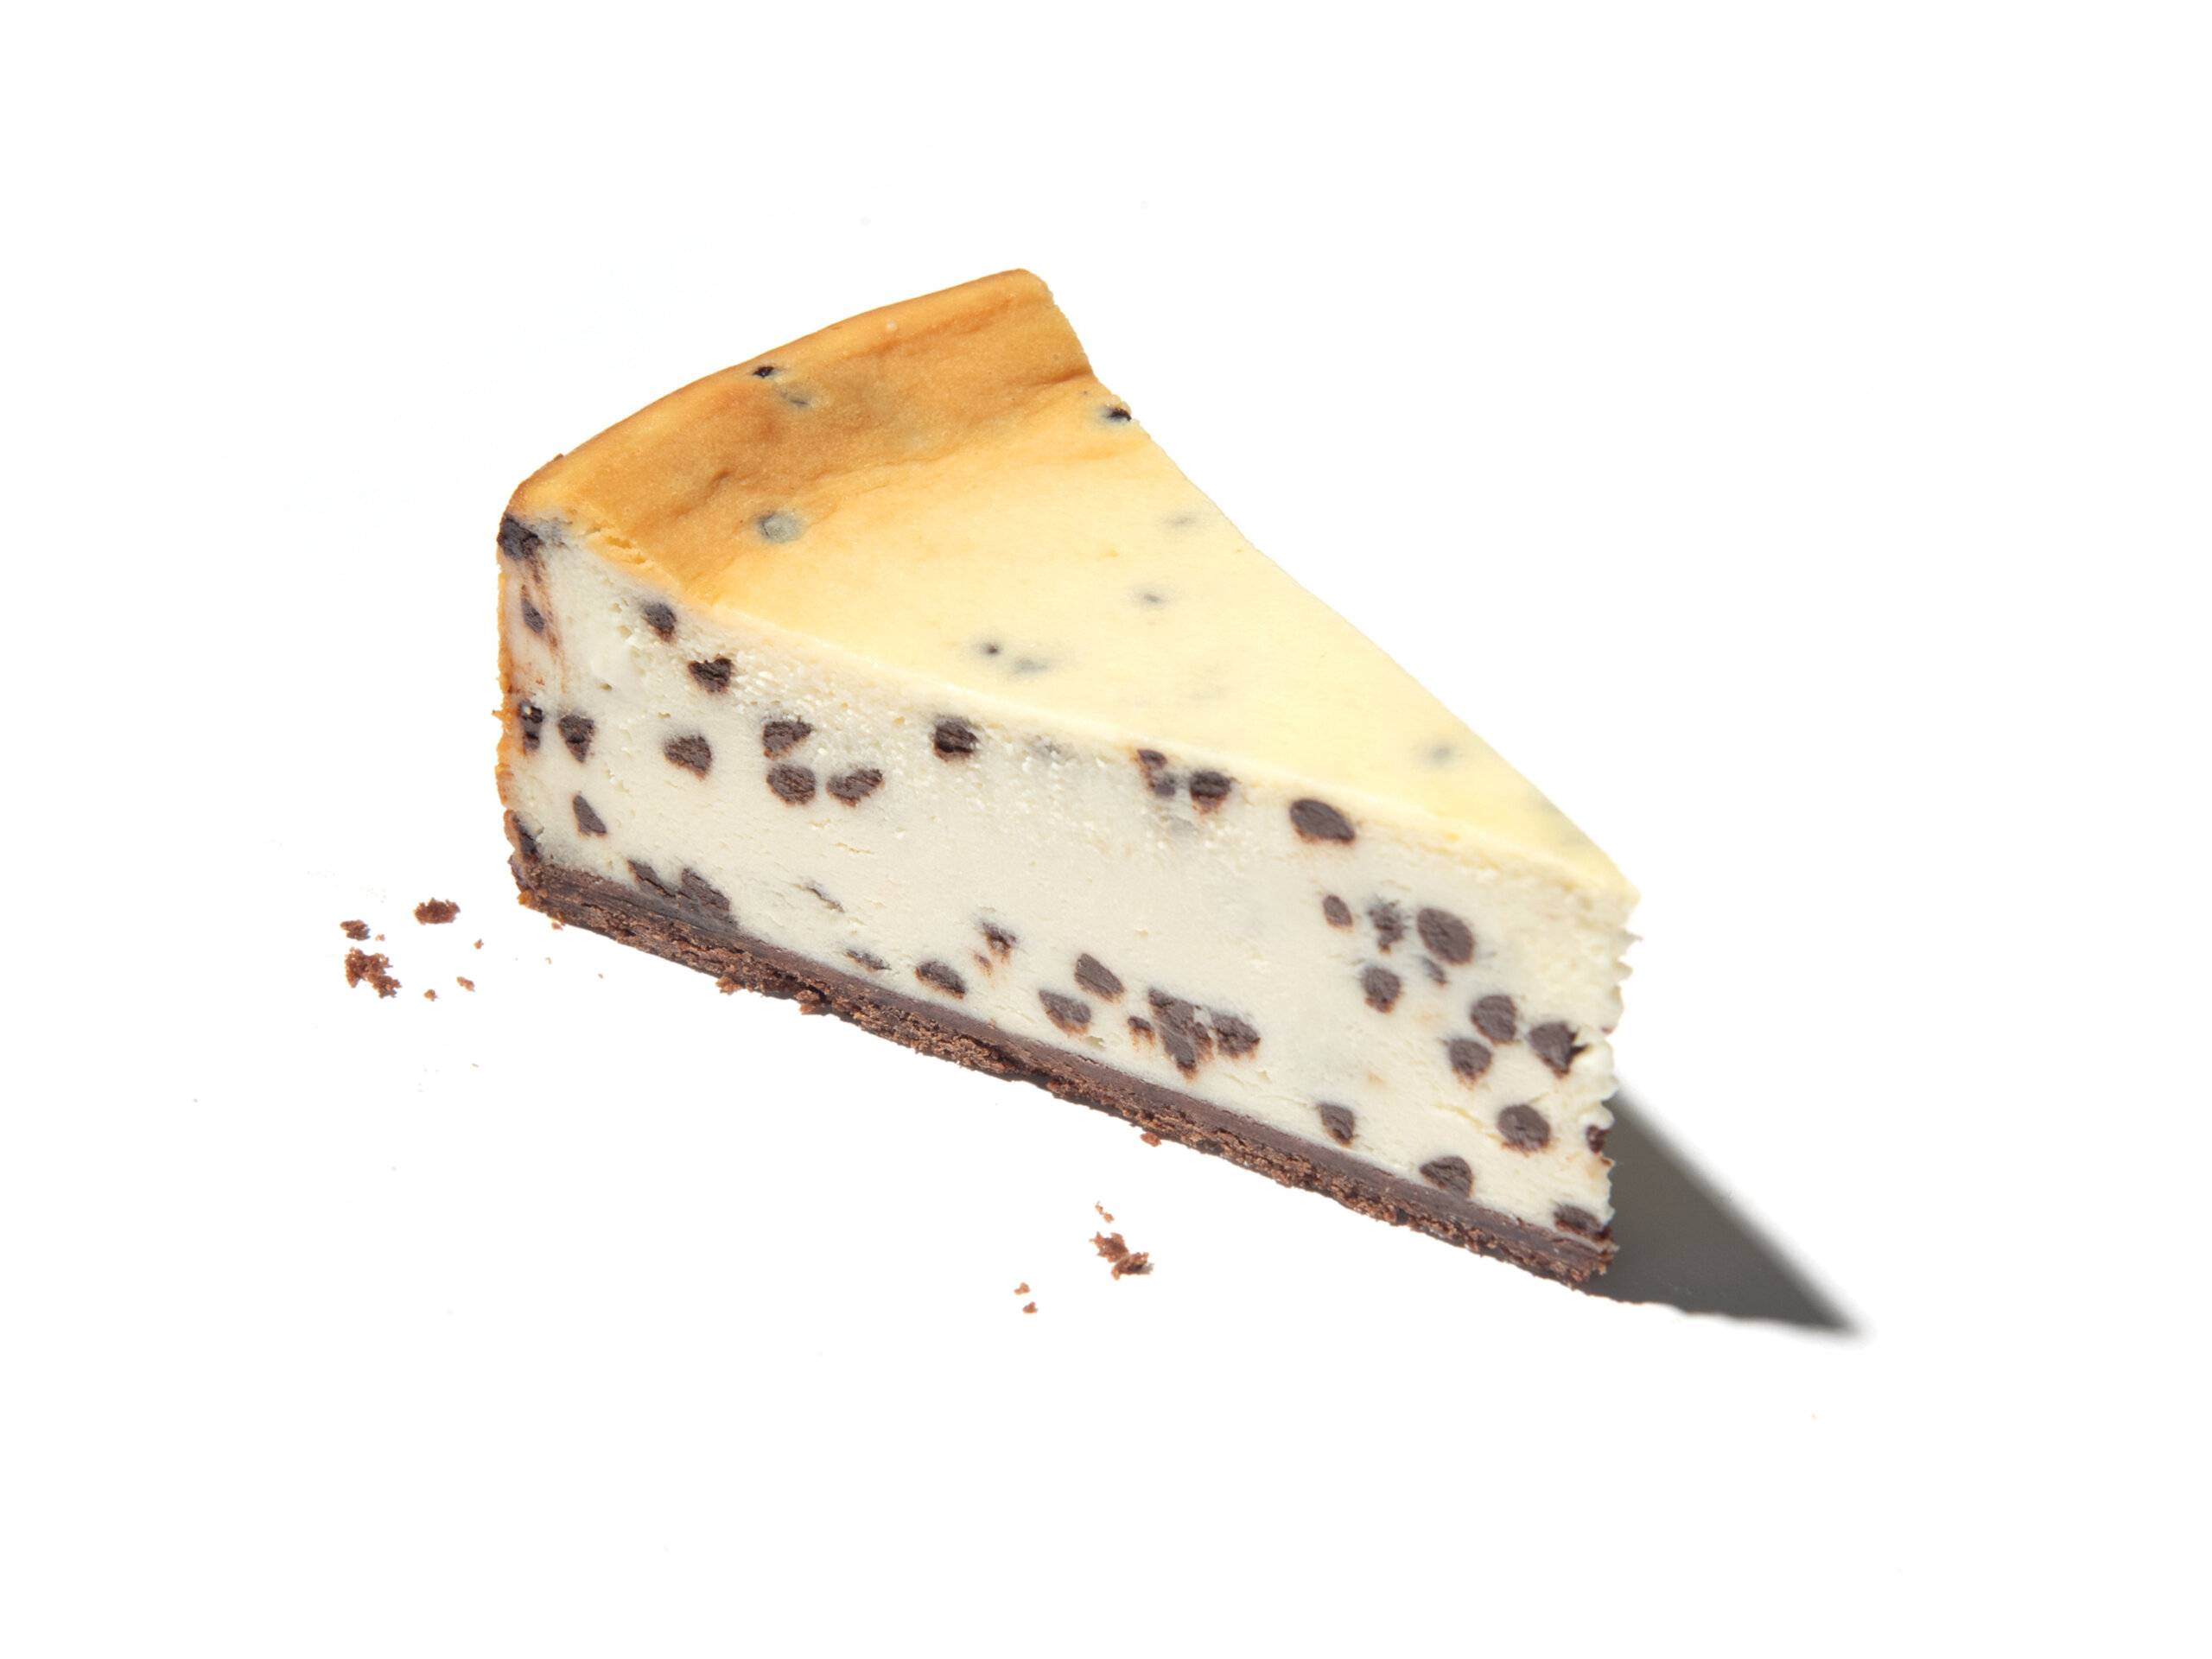 A slice of Eli's Chocolate Chip Cheesecake